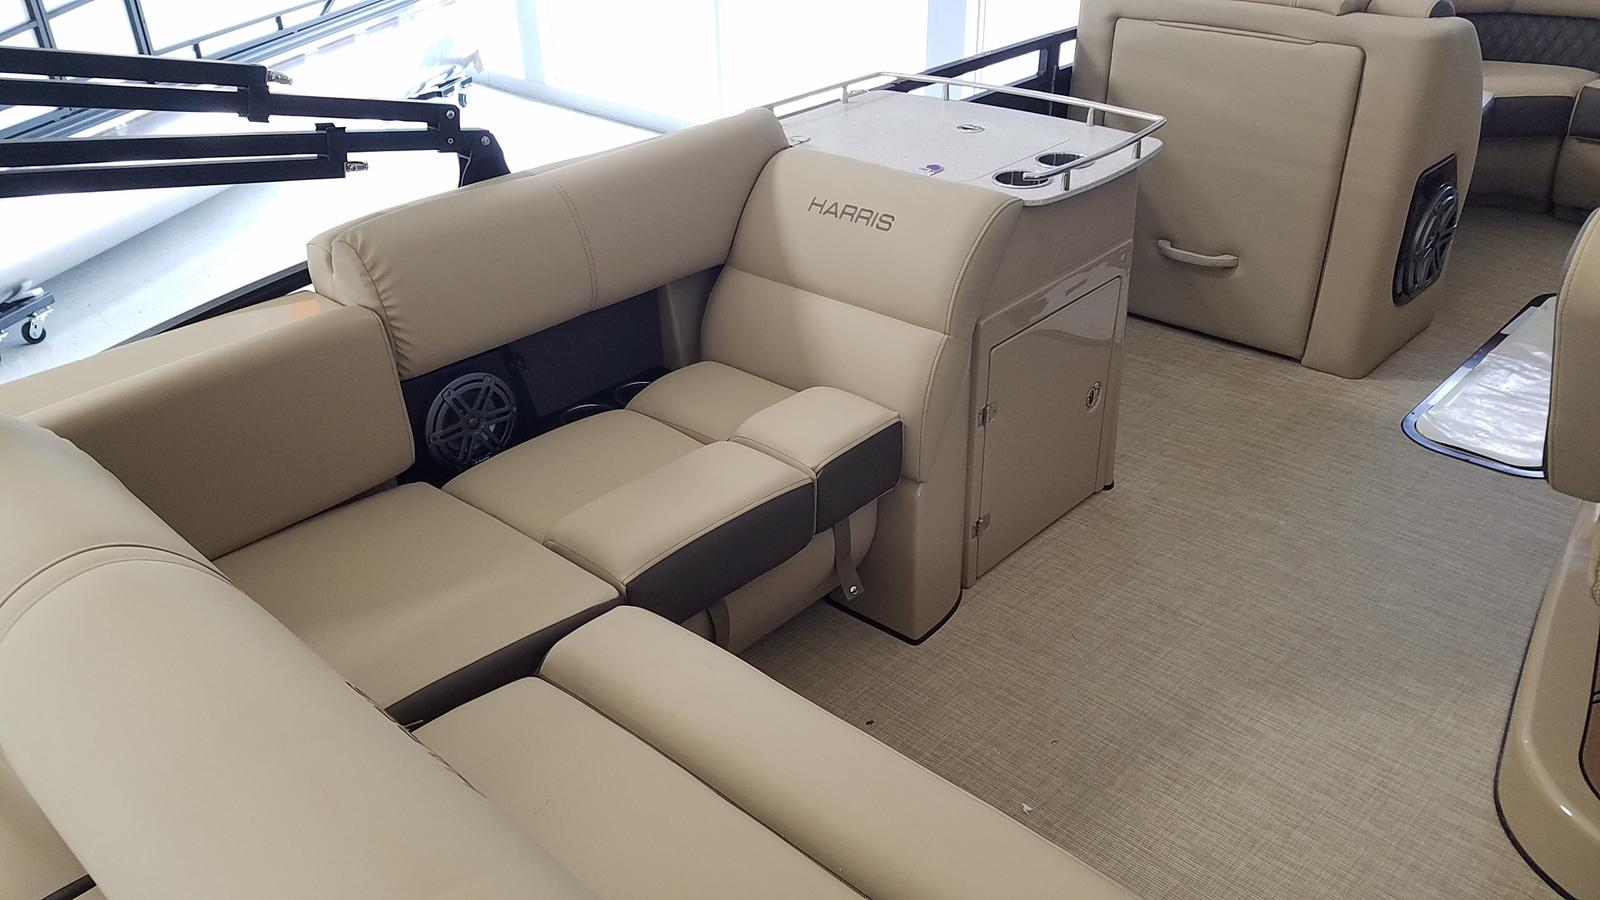 2021 Harris boat for sale, model of the boat is Solstice 230 & Image # 3 of 18